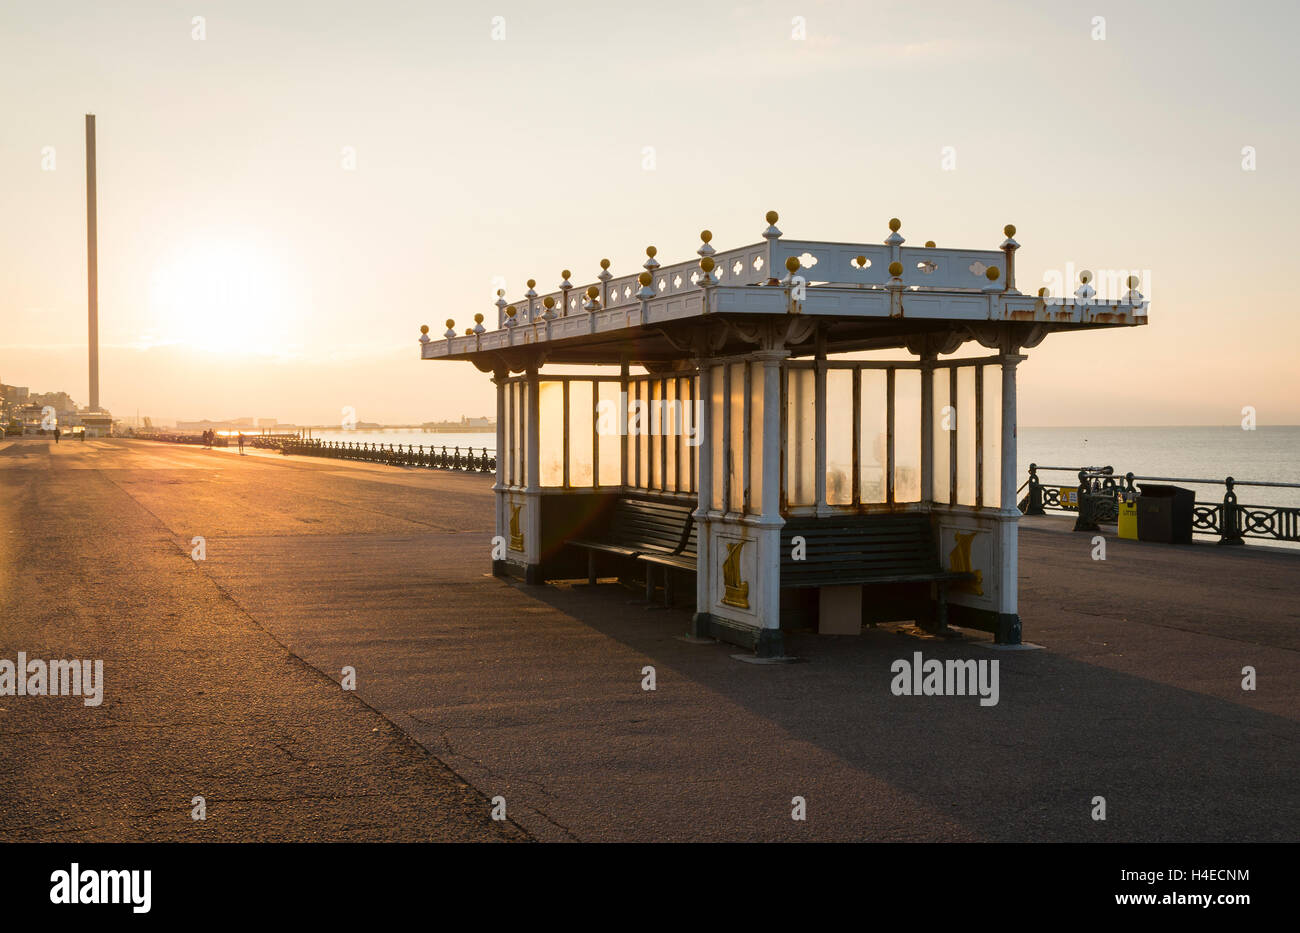 Ornate regency seating shelter with benches in on Brighton / Hove seafront promenade with sunrise in the background Stock Photo